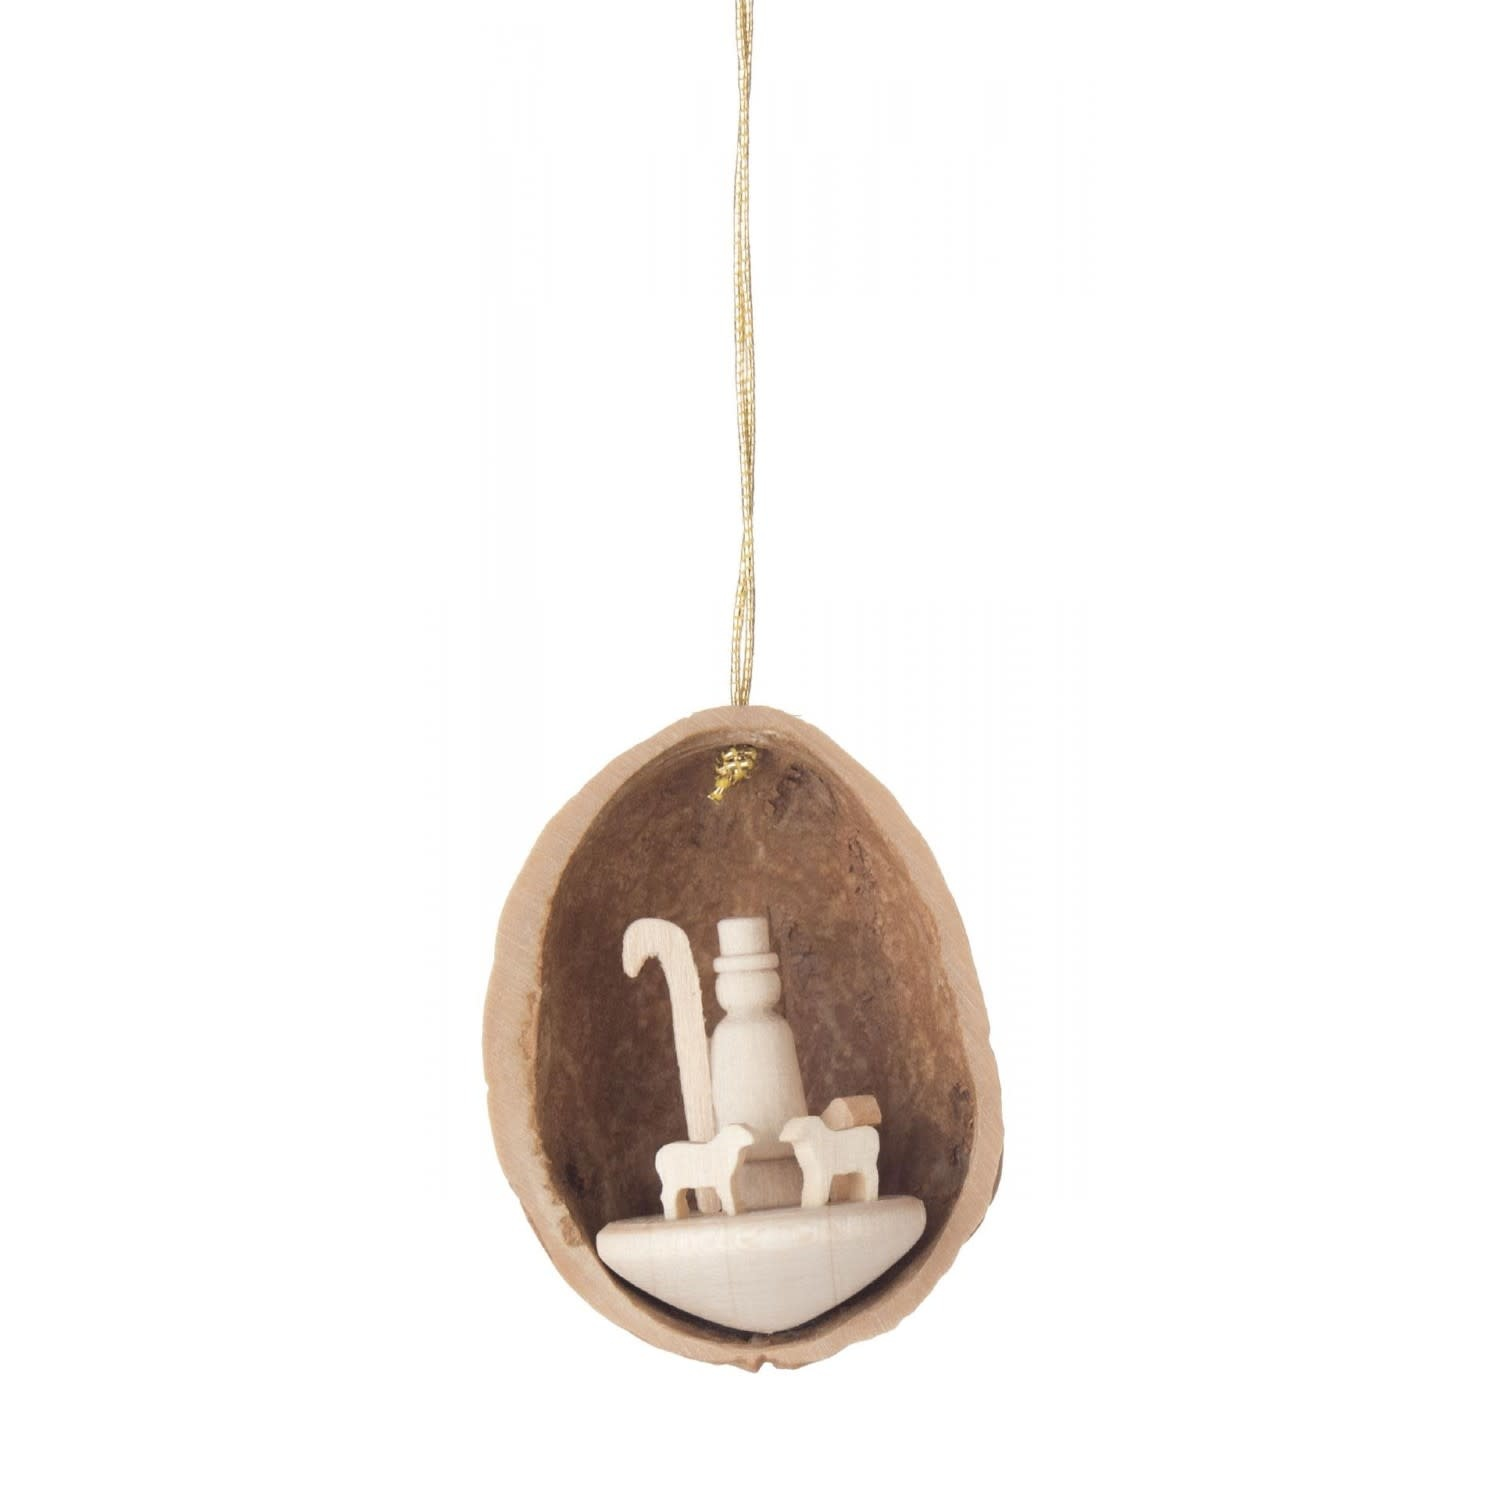 199/171 Walnut ornament shell hanging with sheep